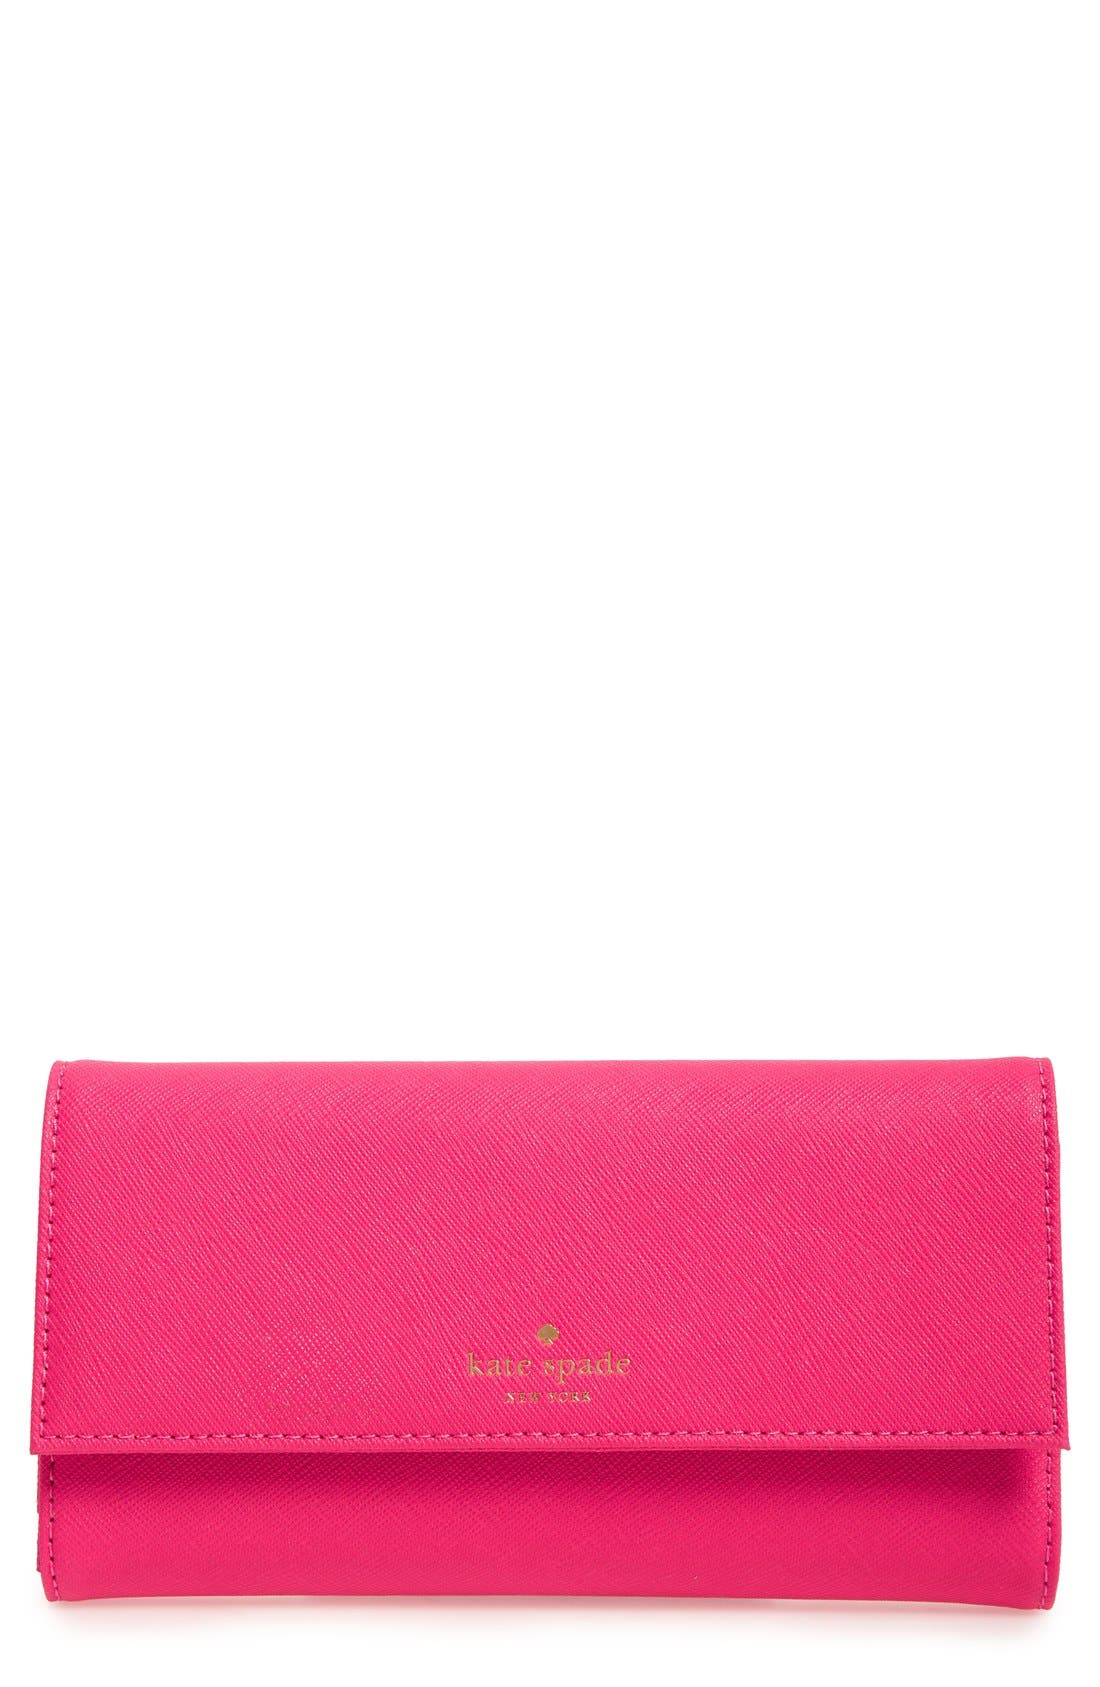 Alternate Image 1 Selected - kate spade new york leather iPhone 7 & 7 Plus wallet